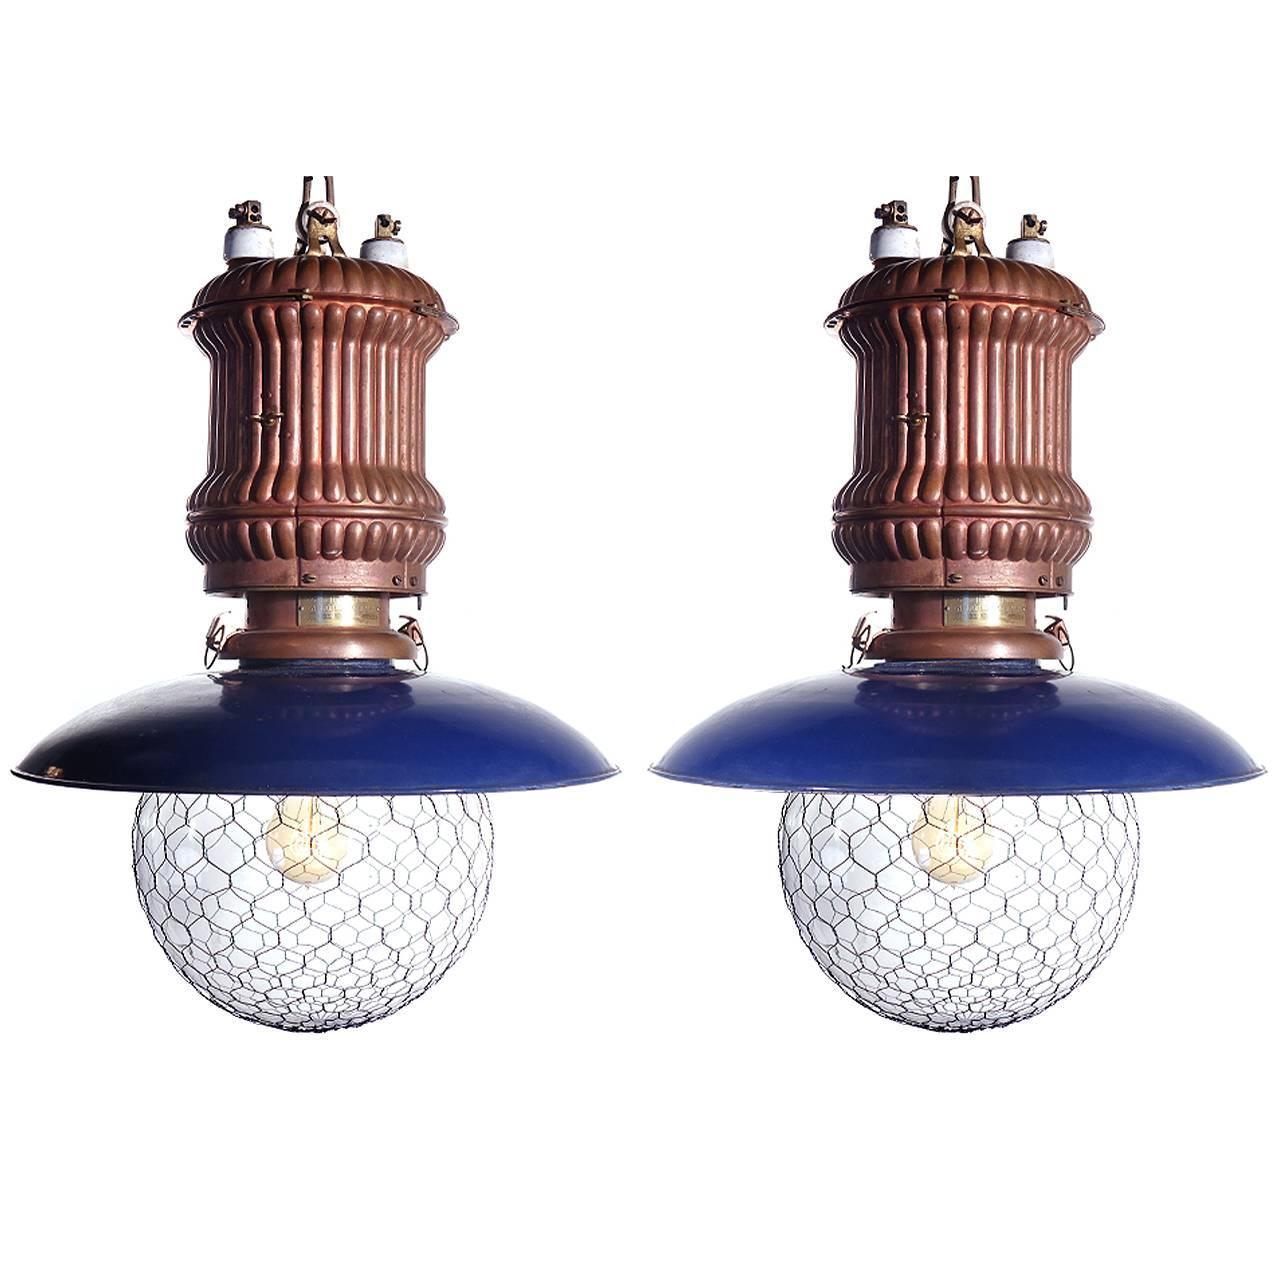 matching pair of early westinghouse street lamps for sale at 1stdibs. Black Bedroom Furniture Sets. Home Design Ideas